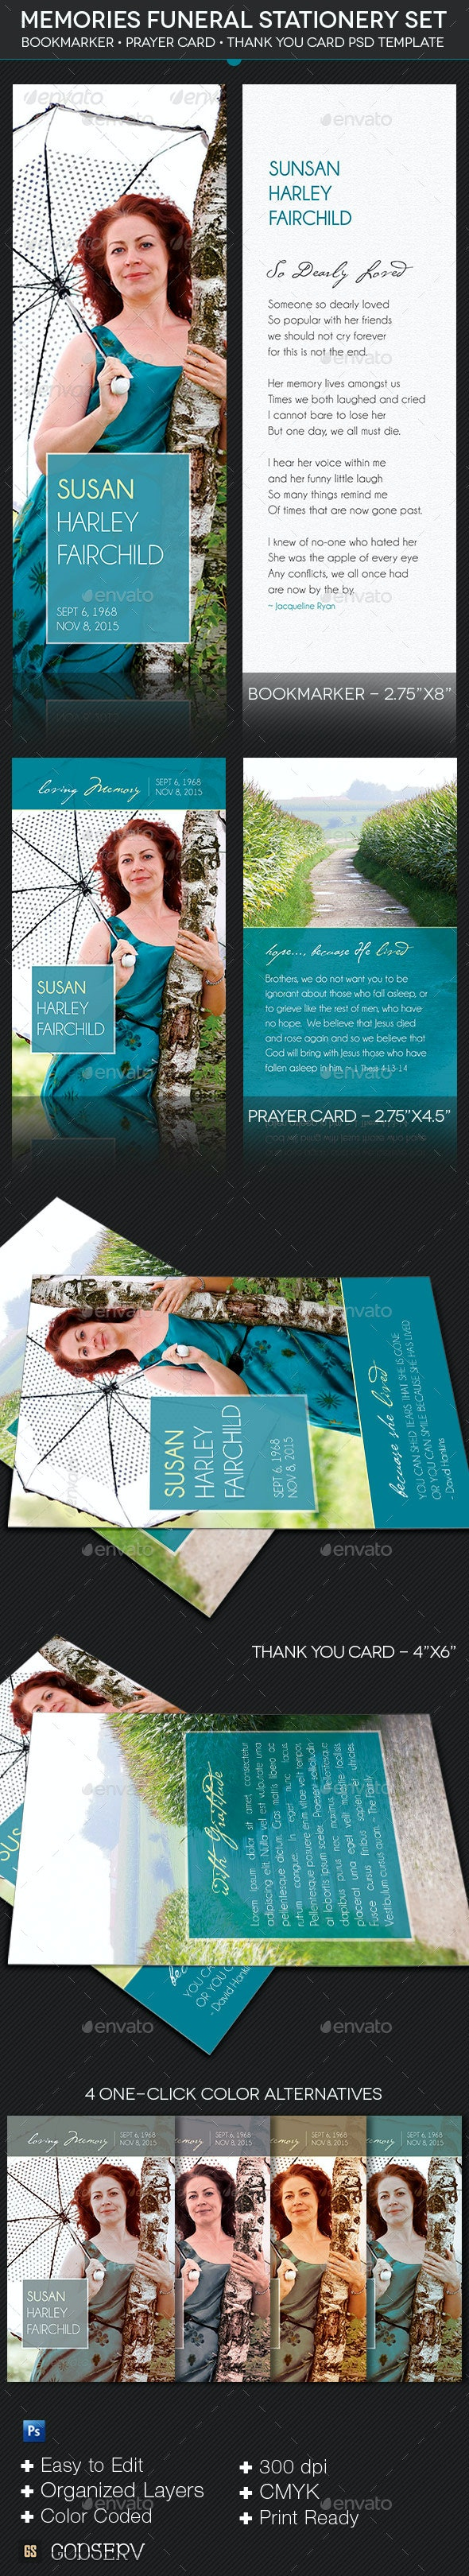 Memories Funeral Stationery Template Set - Stationery Print Templates